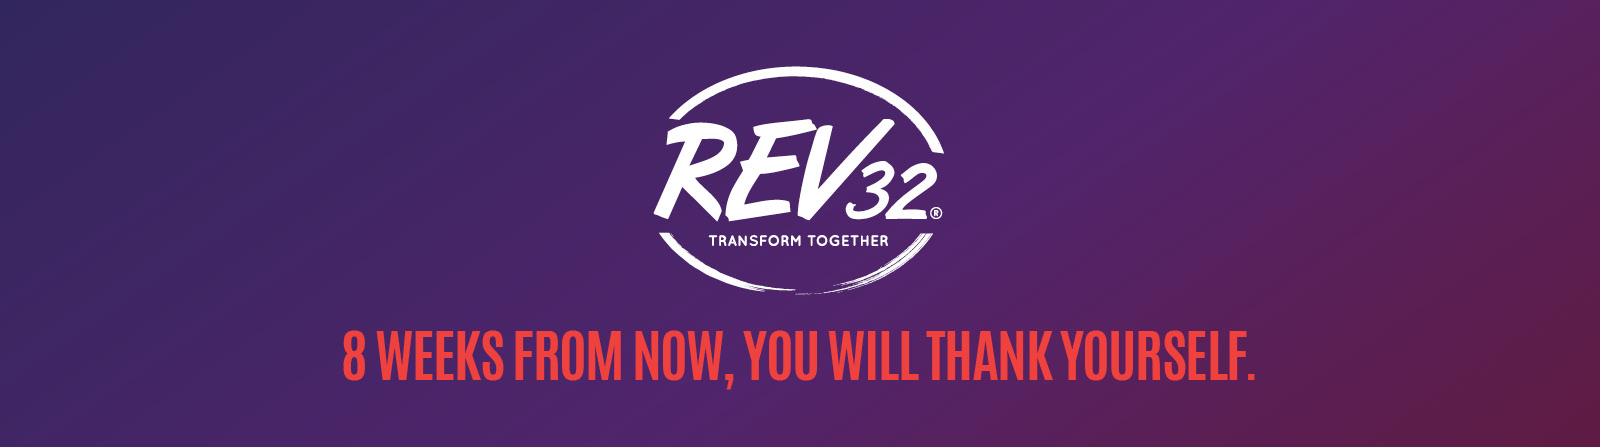 Rev32 Weight Loss Program San Jose Clubsport Health And Fitness Gym